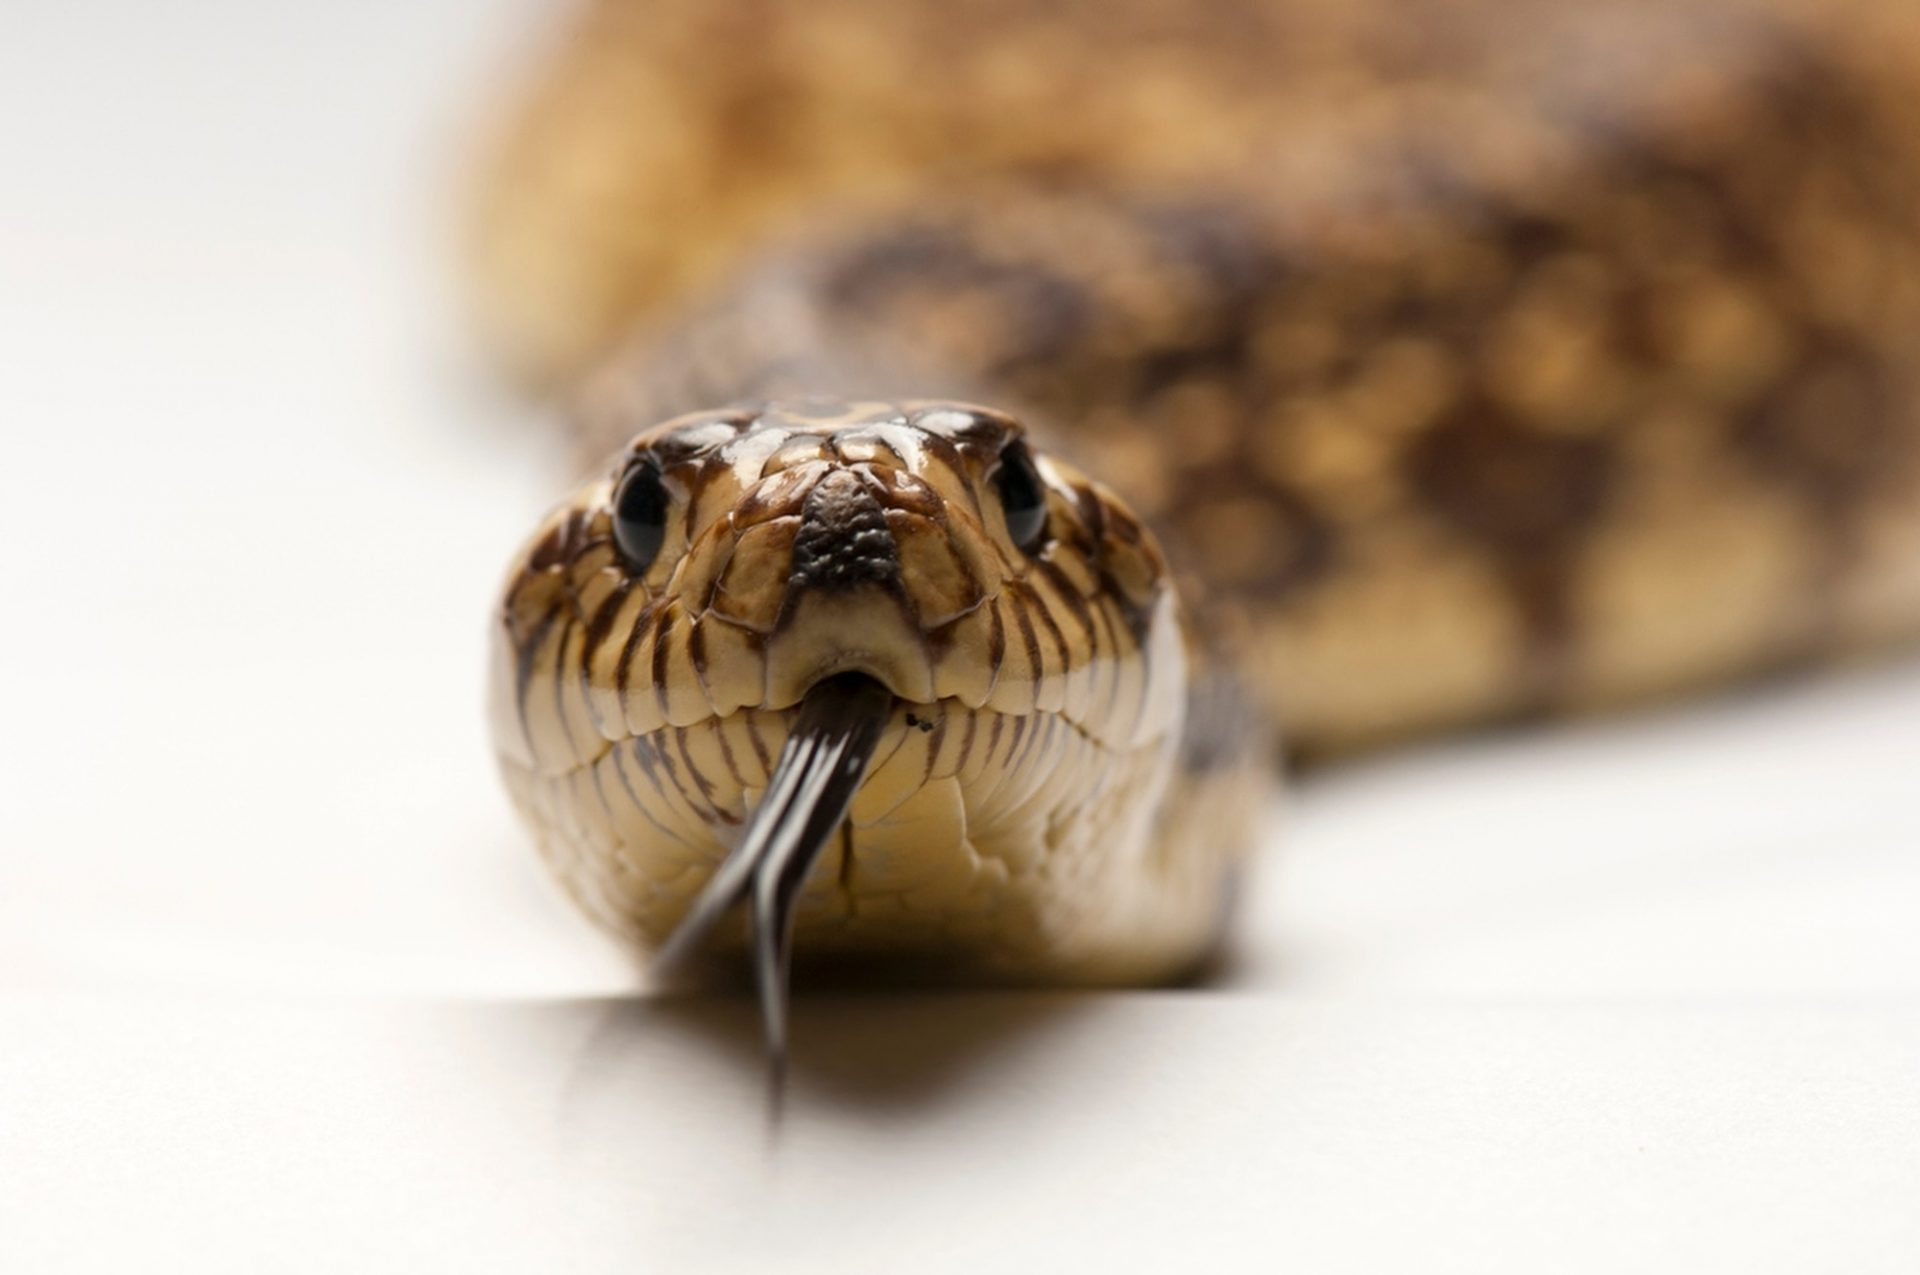 Picture of an endangered Louisiana pine snake, (Pituophis ruthveni) at the Sedgwick County Zoo in Wichita, Kansas.